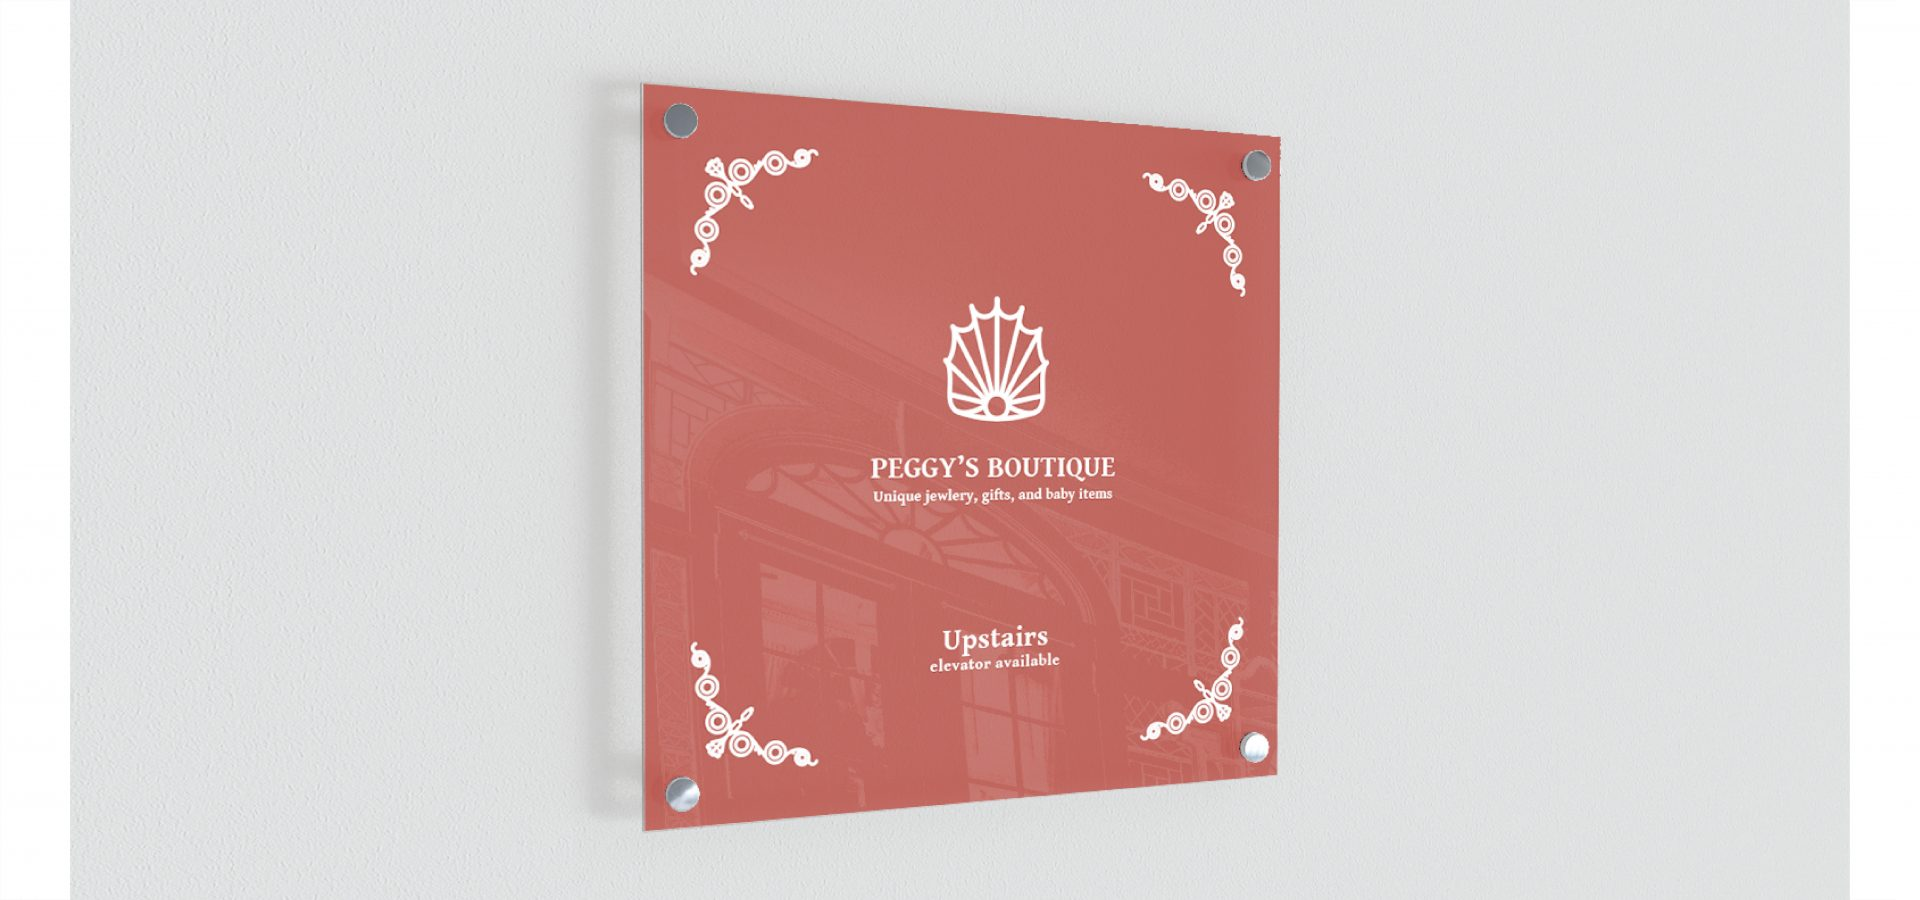 Design for door sign for Hostess House, feature sub-brand logo and directions.